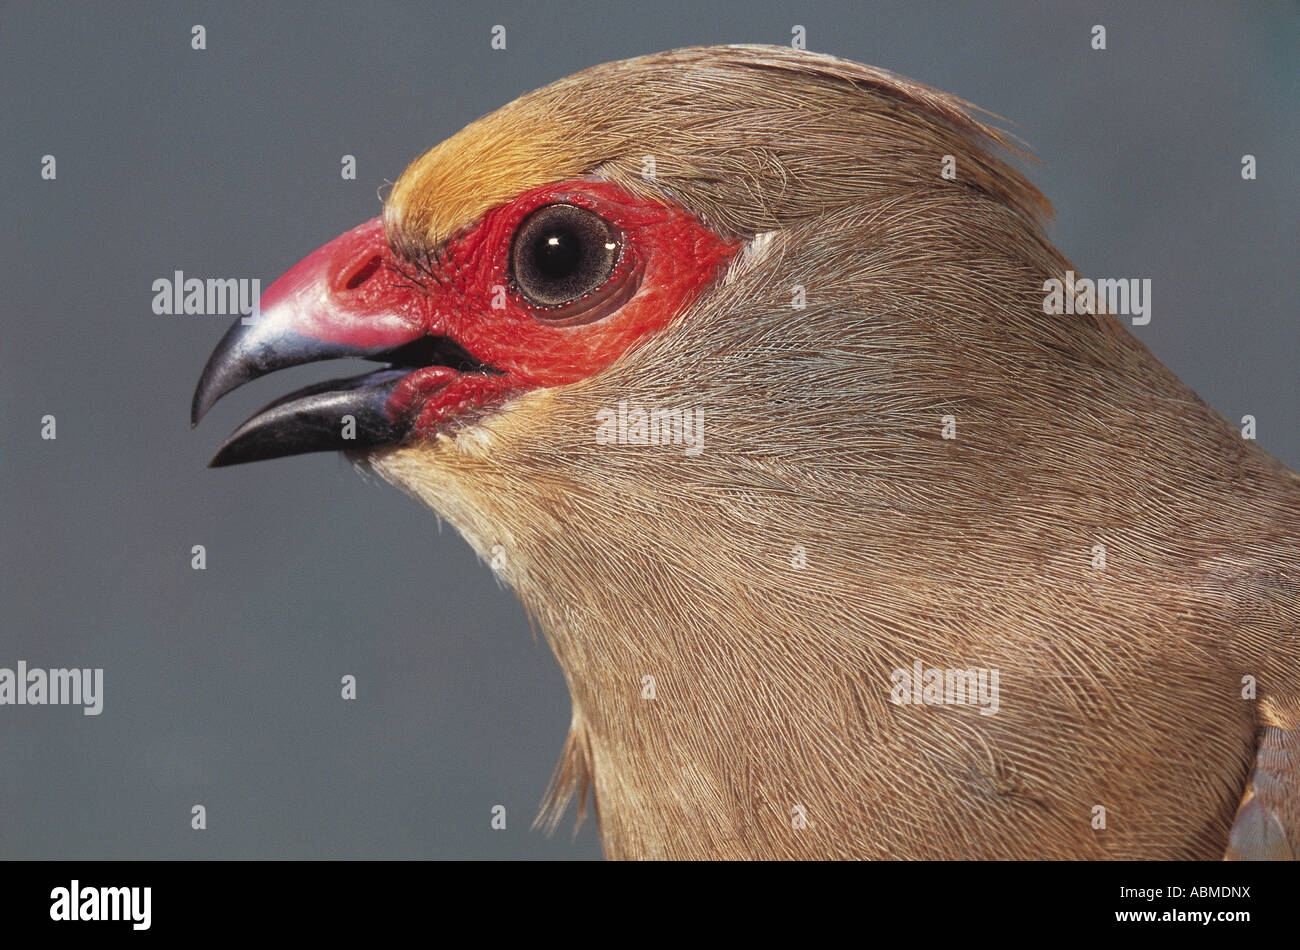 Red faced Mousebird Colius indicus Zululand South Africa - Stock Image